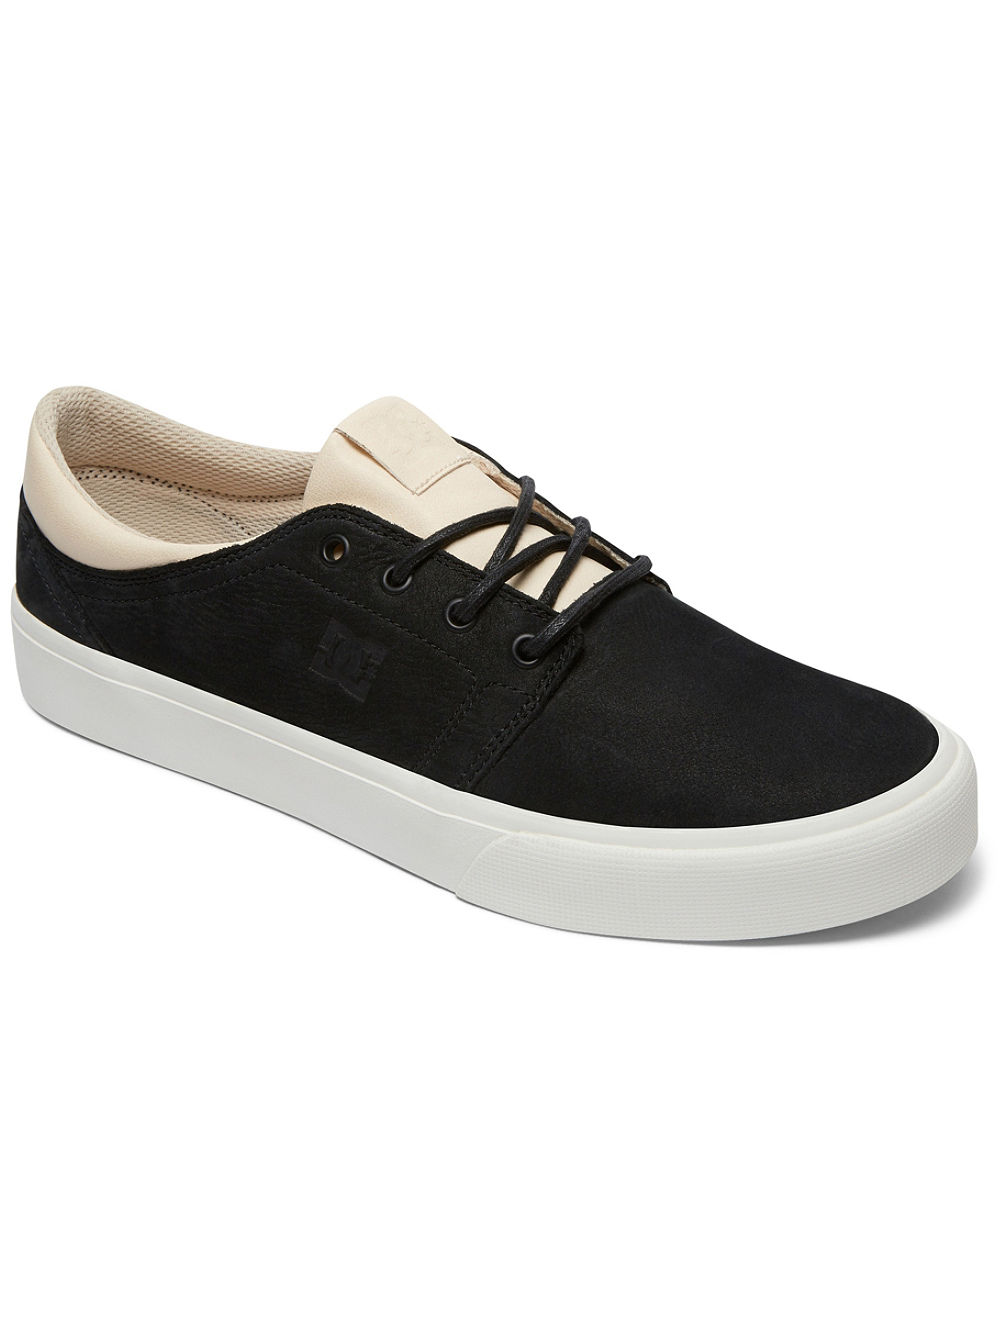 Trase LX Sneakers